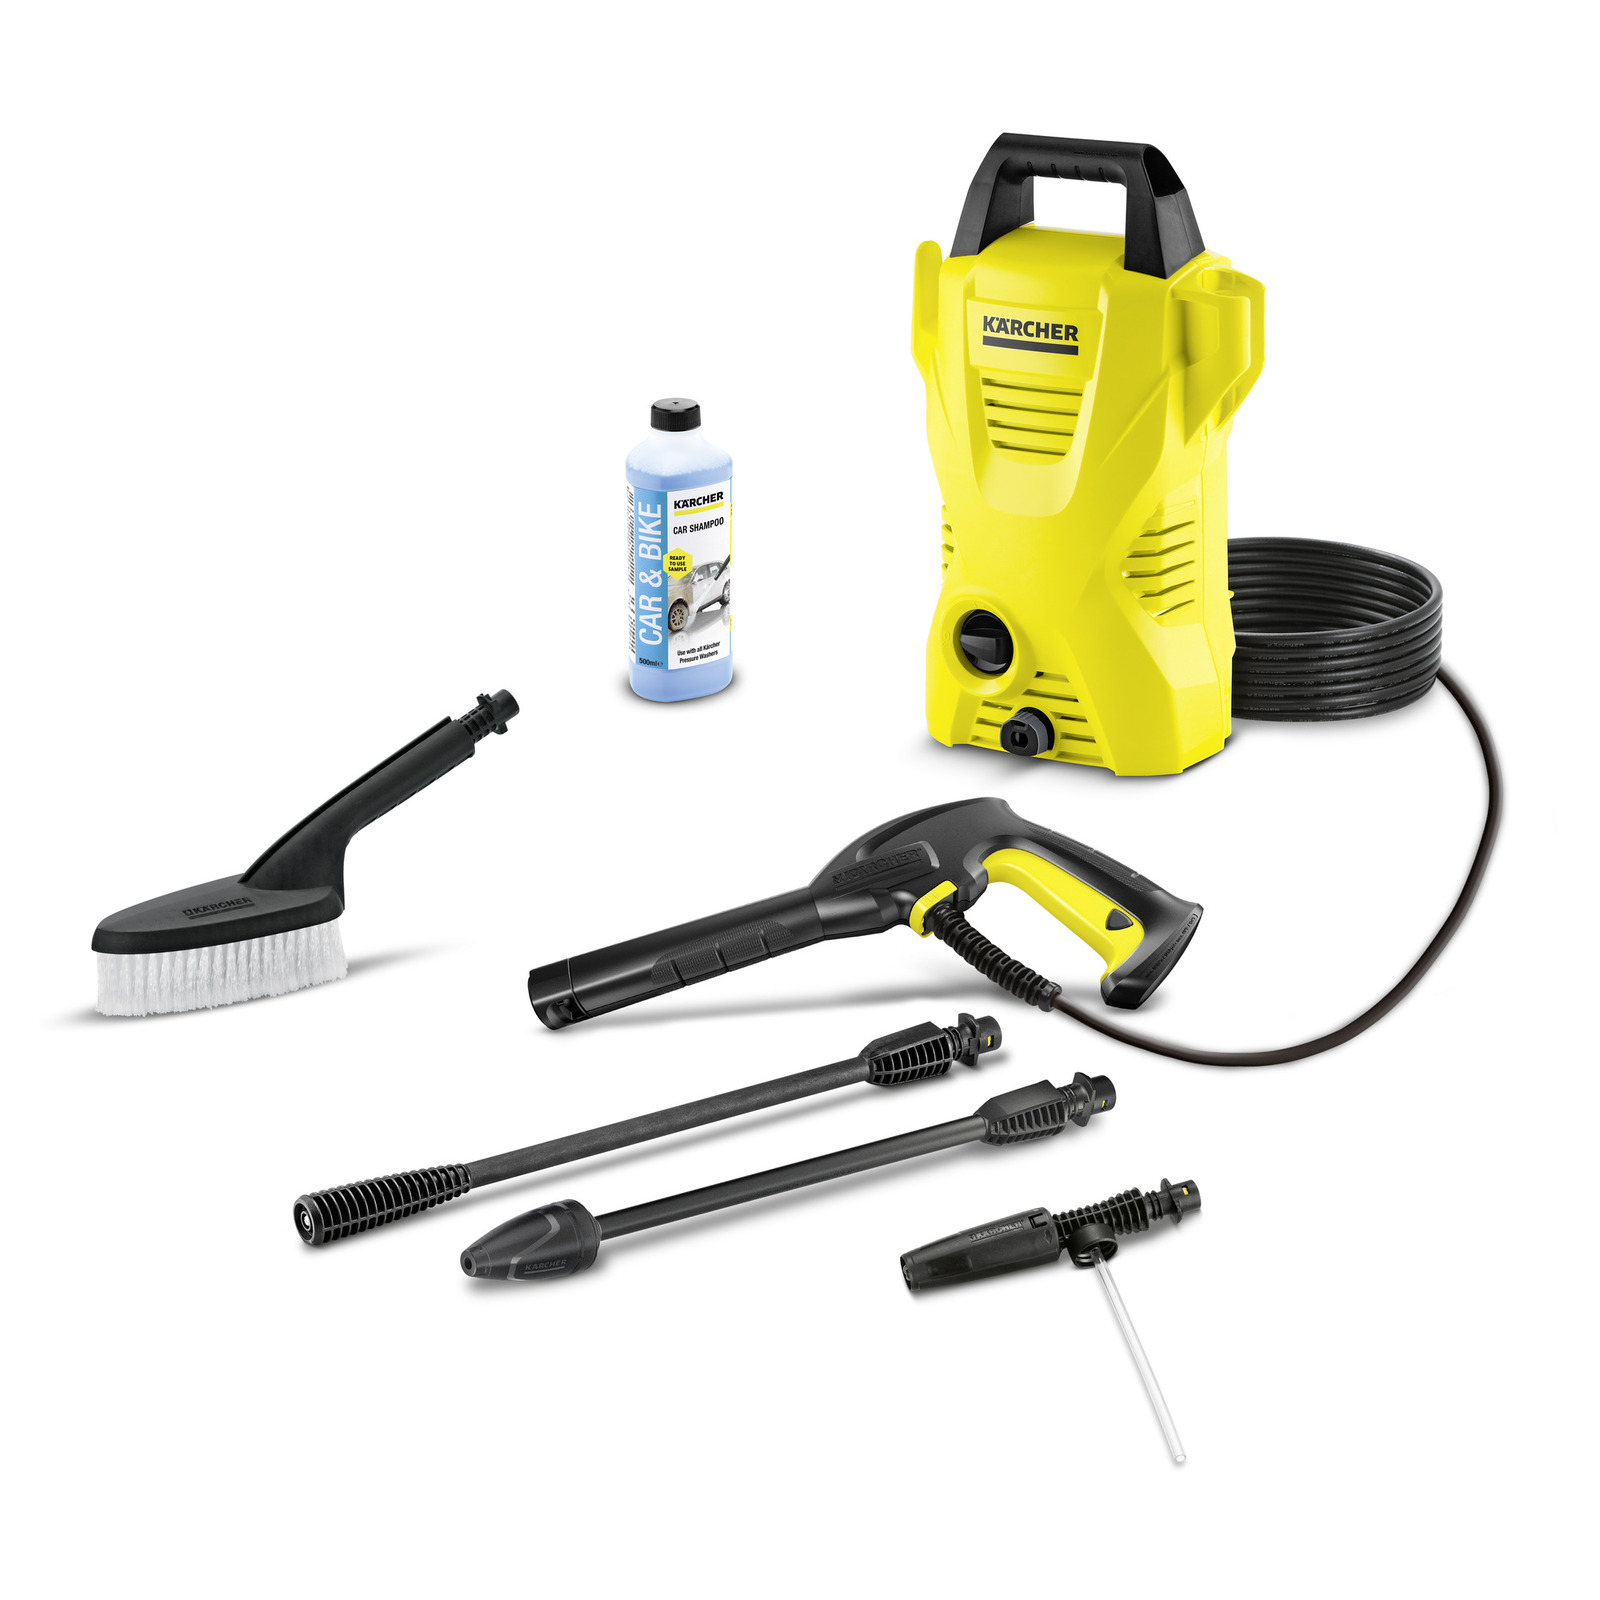 Lot 59016 - V Brand New Karcher K2 Compact Car High Pressure Cleaner With Wash Brush - Foam Nozzle & Car Shampoo